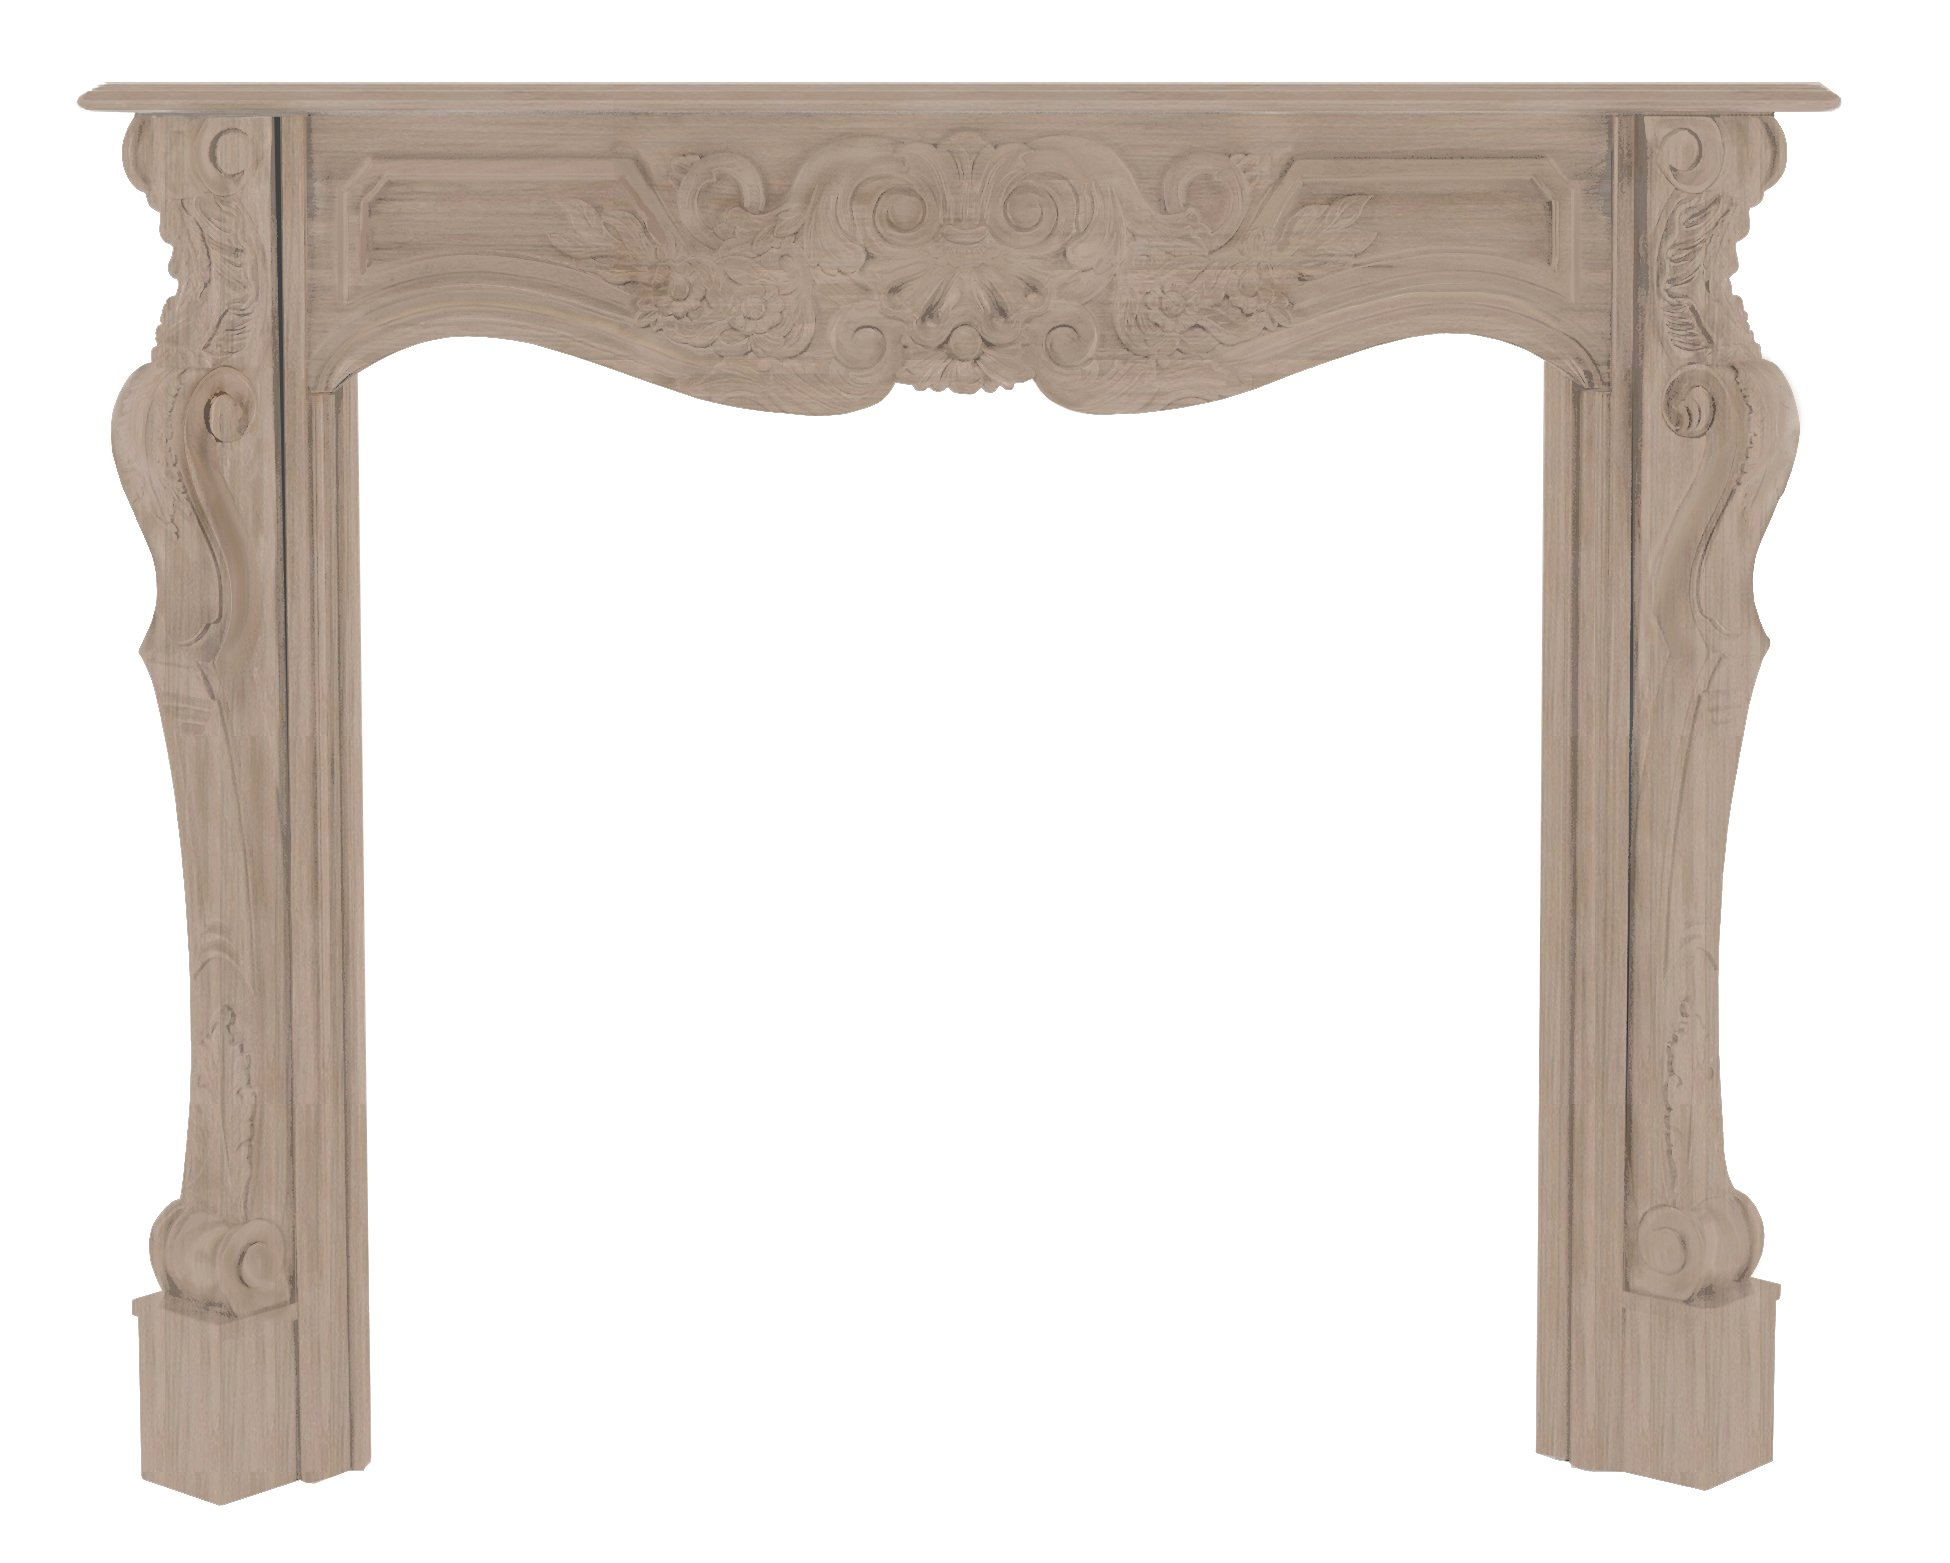 Pearl Mantels 134-48 Deauville Fireplace Mantel, 48-Inch, Unfinished by Pearl Mantels